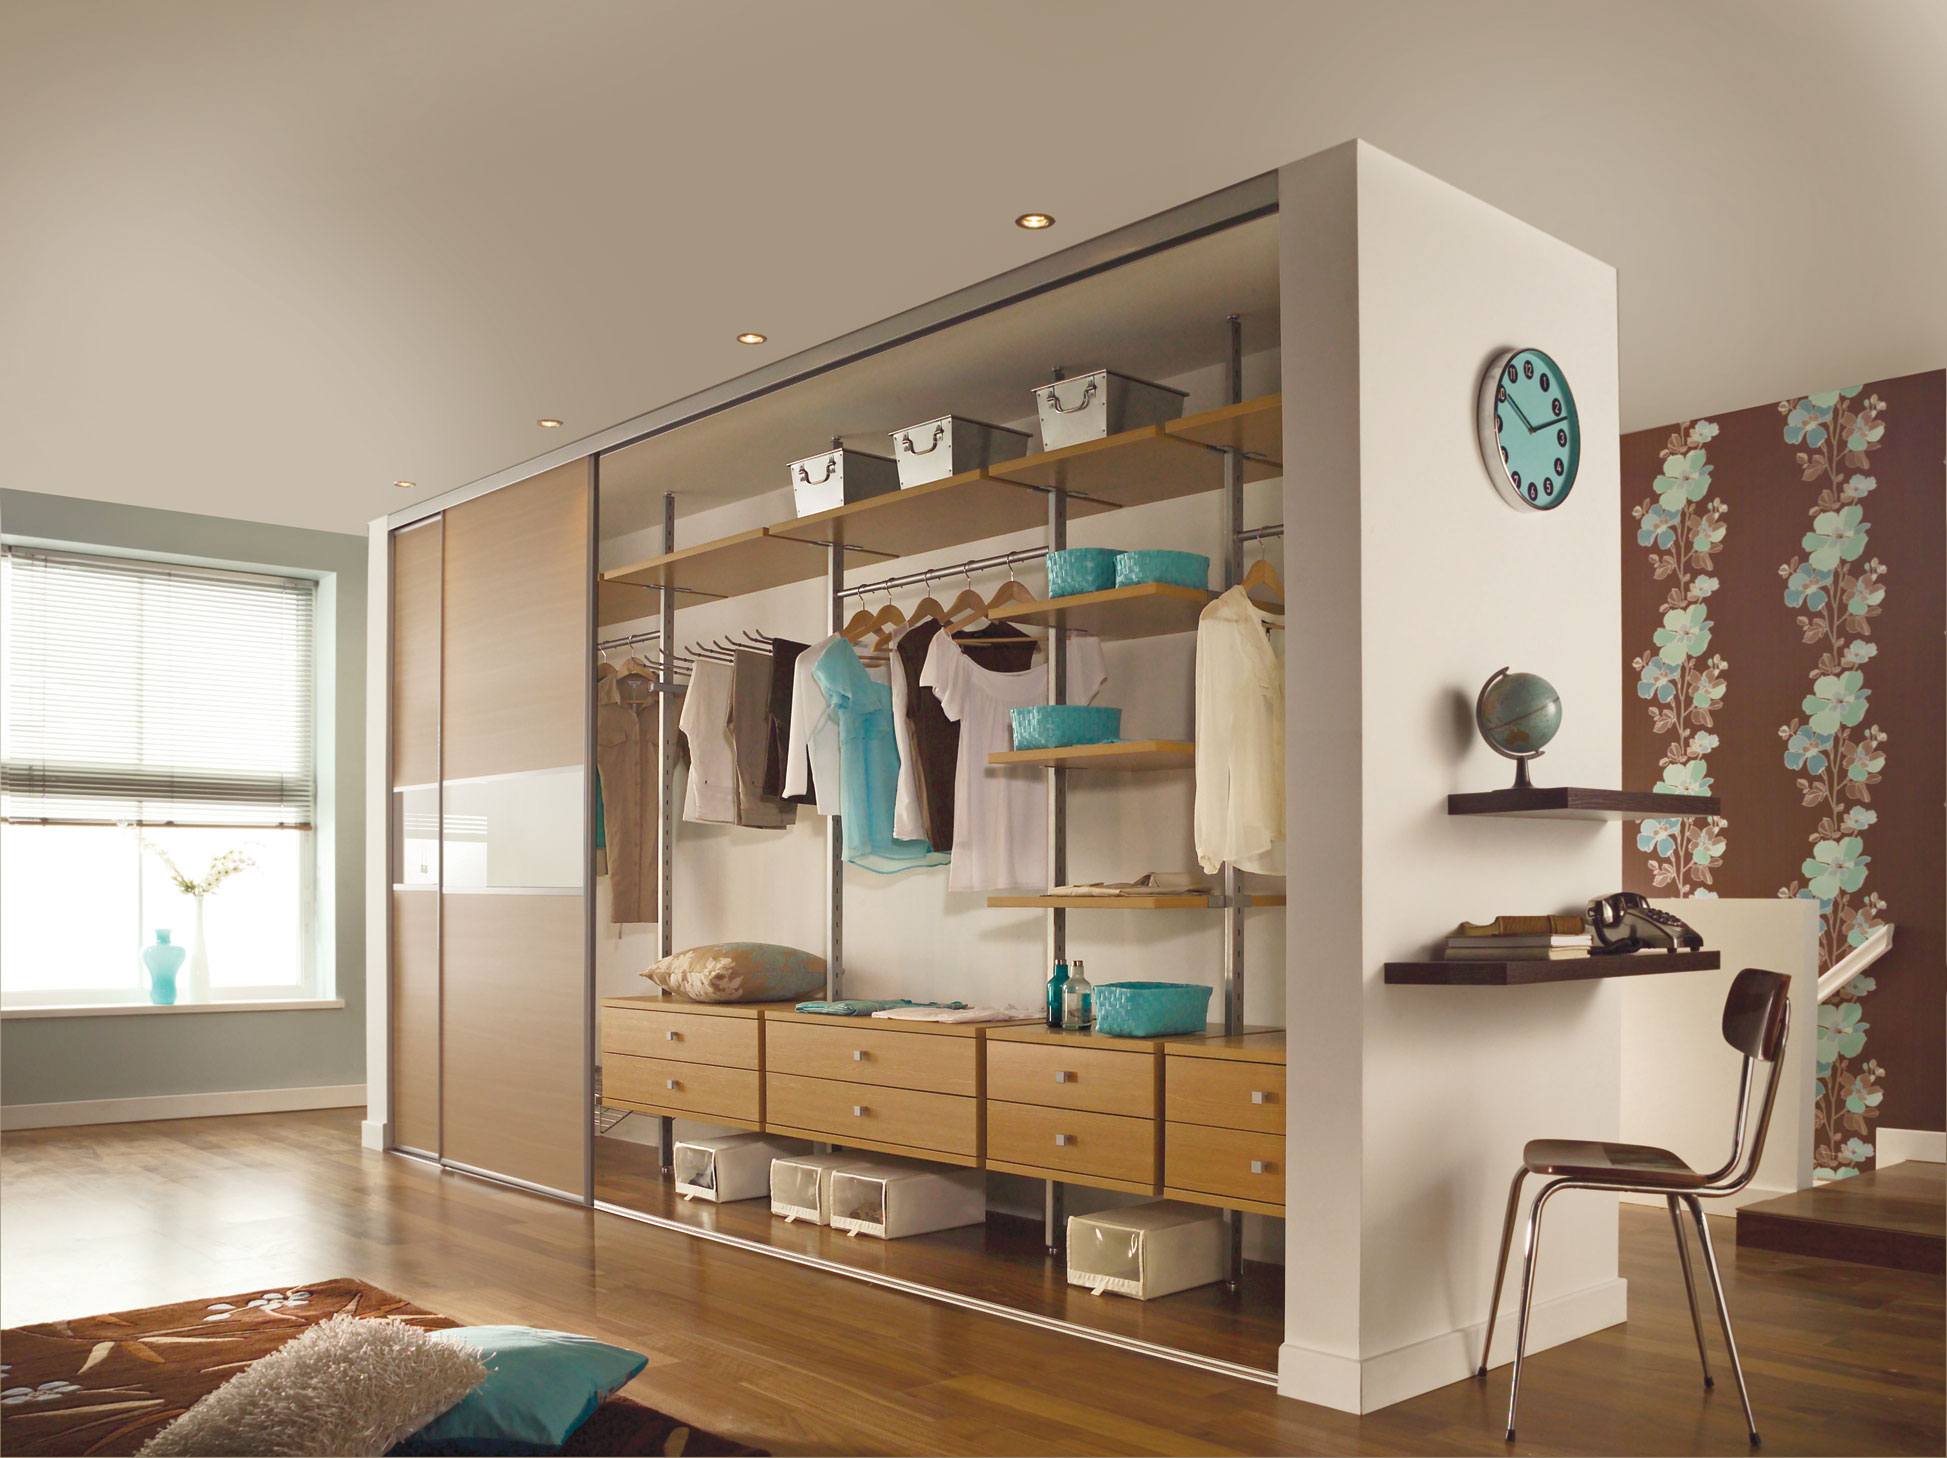 garderobe kleiderschrank inneneinrichtung ohne t ren aequivalere. Black Bedroom Furniture Sets. Home Design Ideas